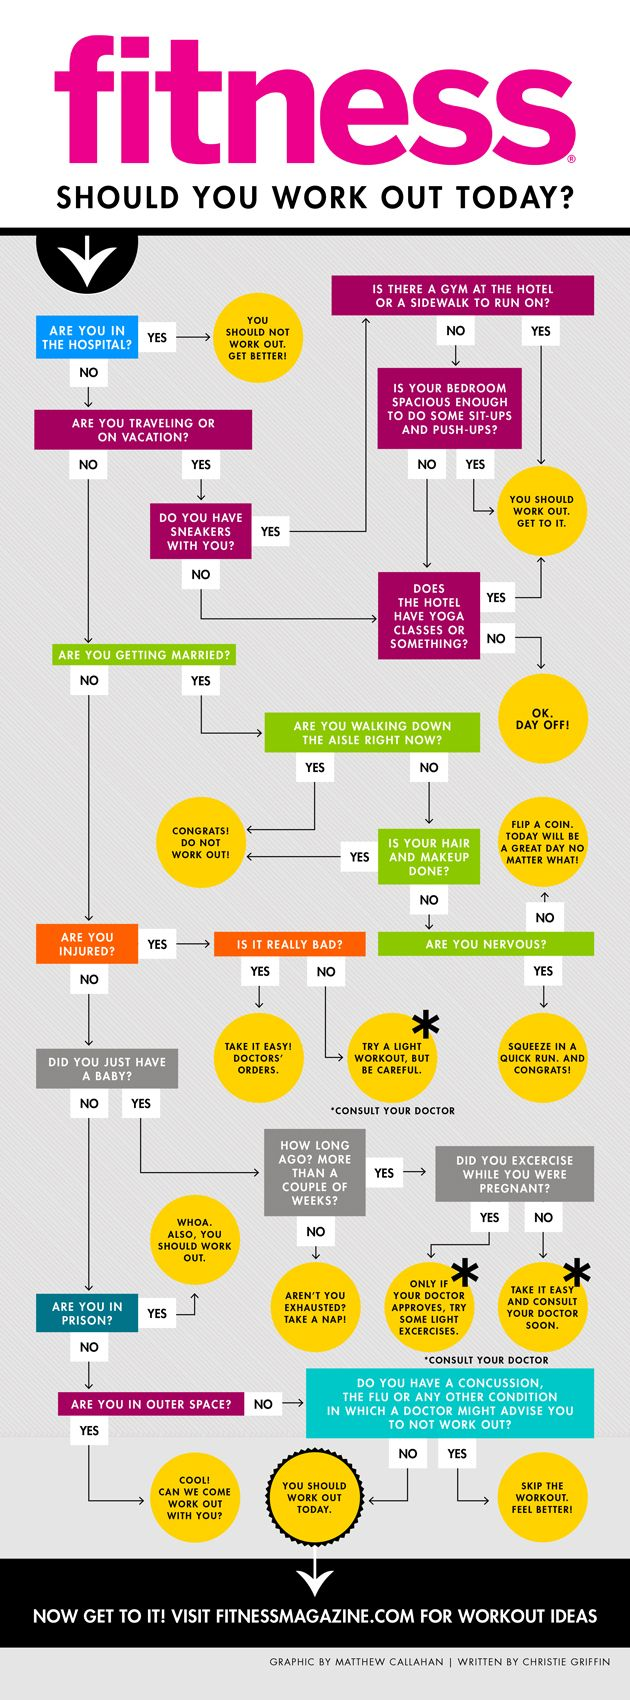 Best Health  Fitness Images By Jess Gonz On Pinterest  Flowchart Should You Work Out Today